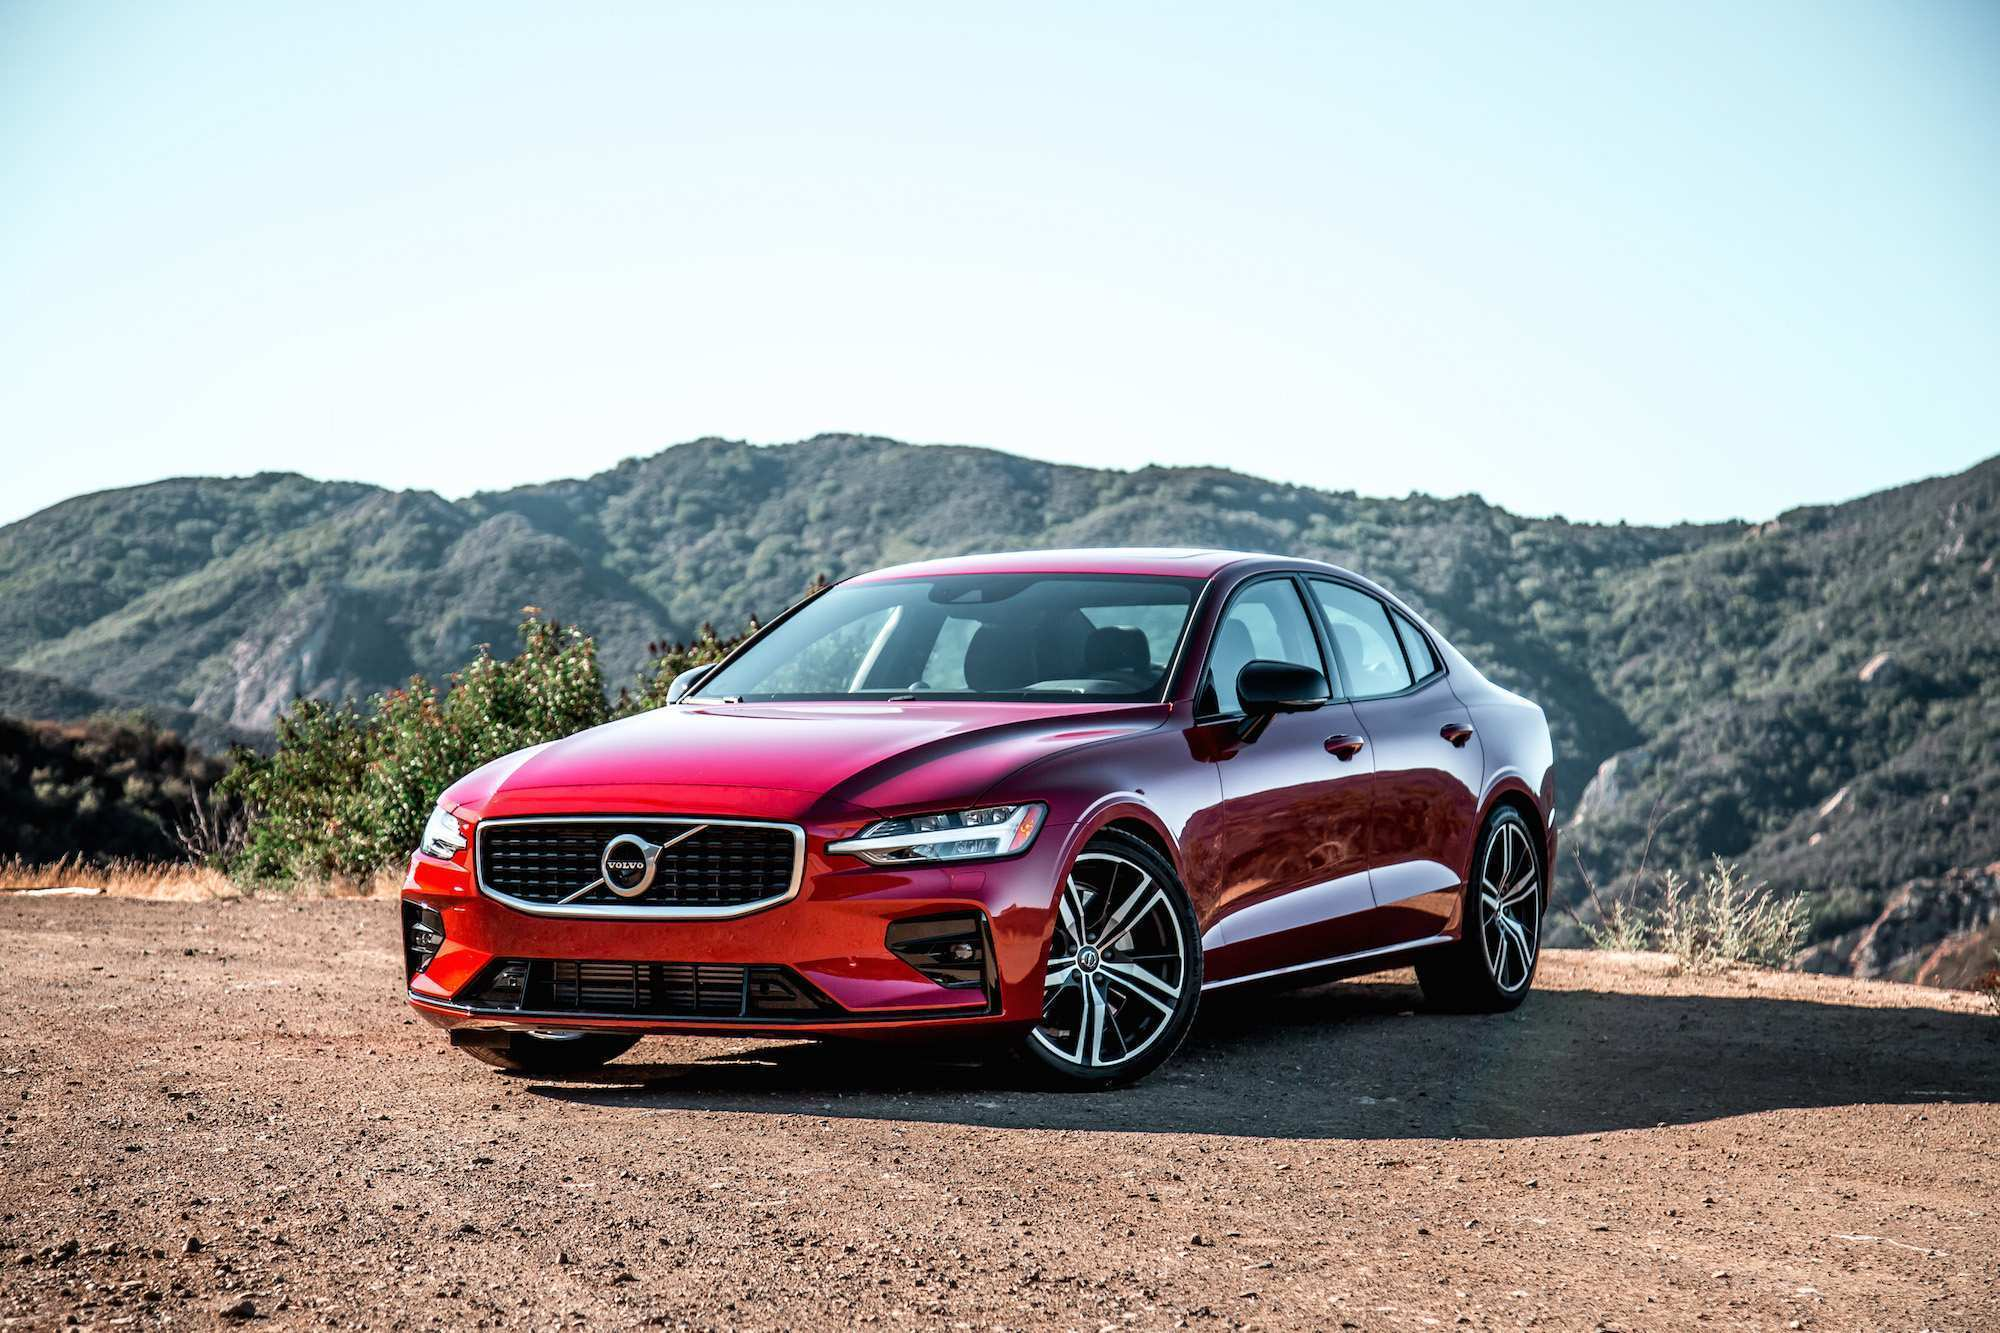 60 All New Volvo Open 2020 Price by Volvo Open 2020